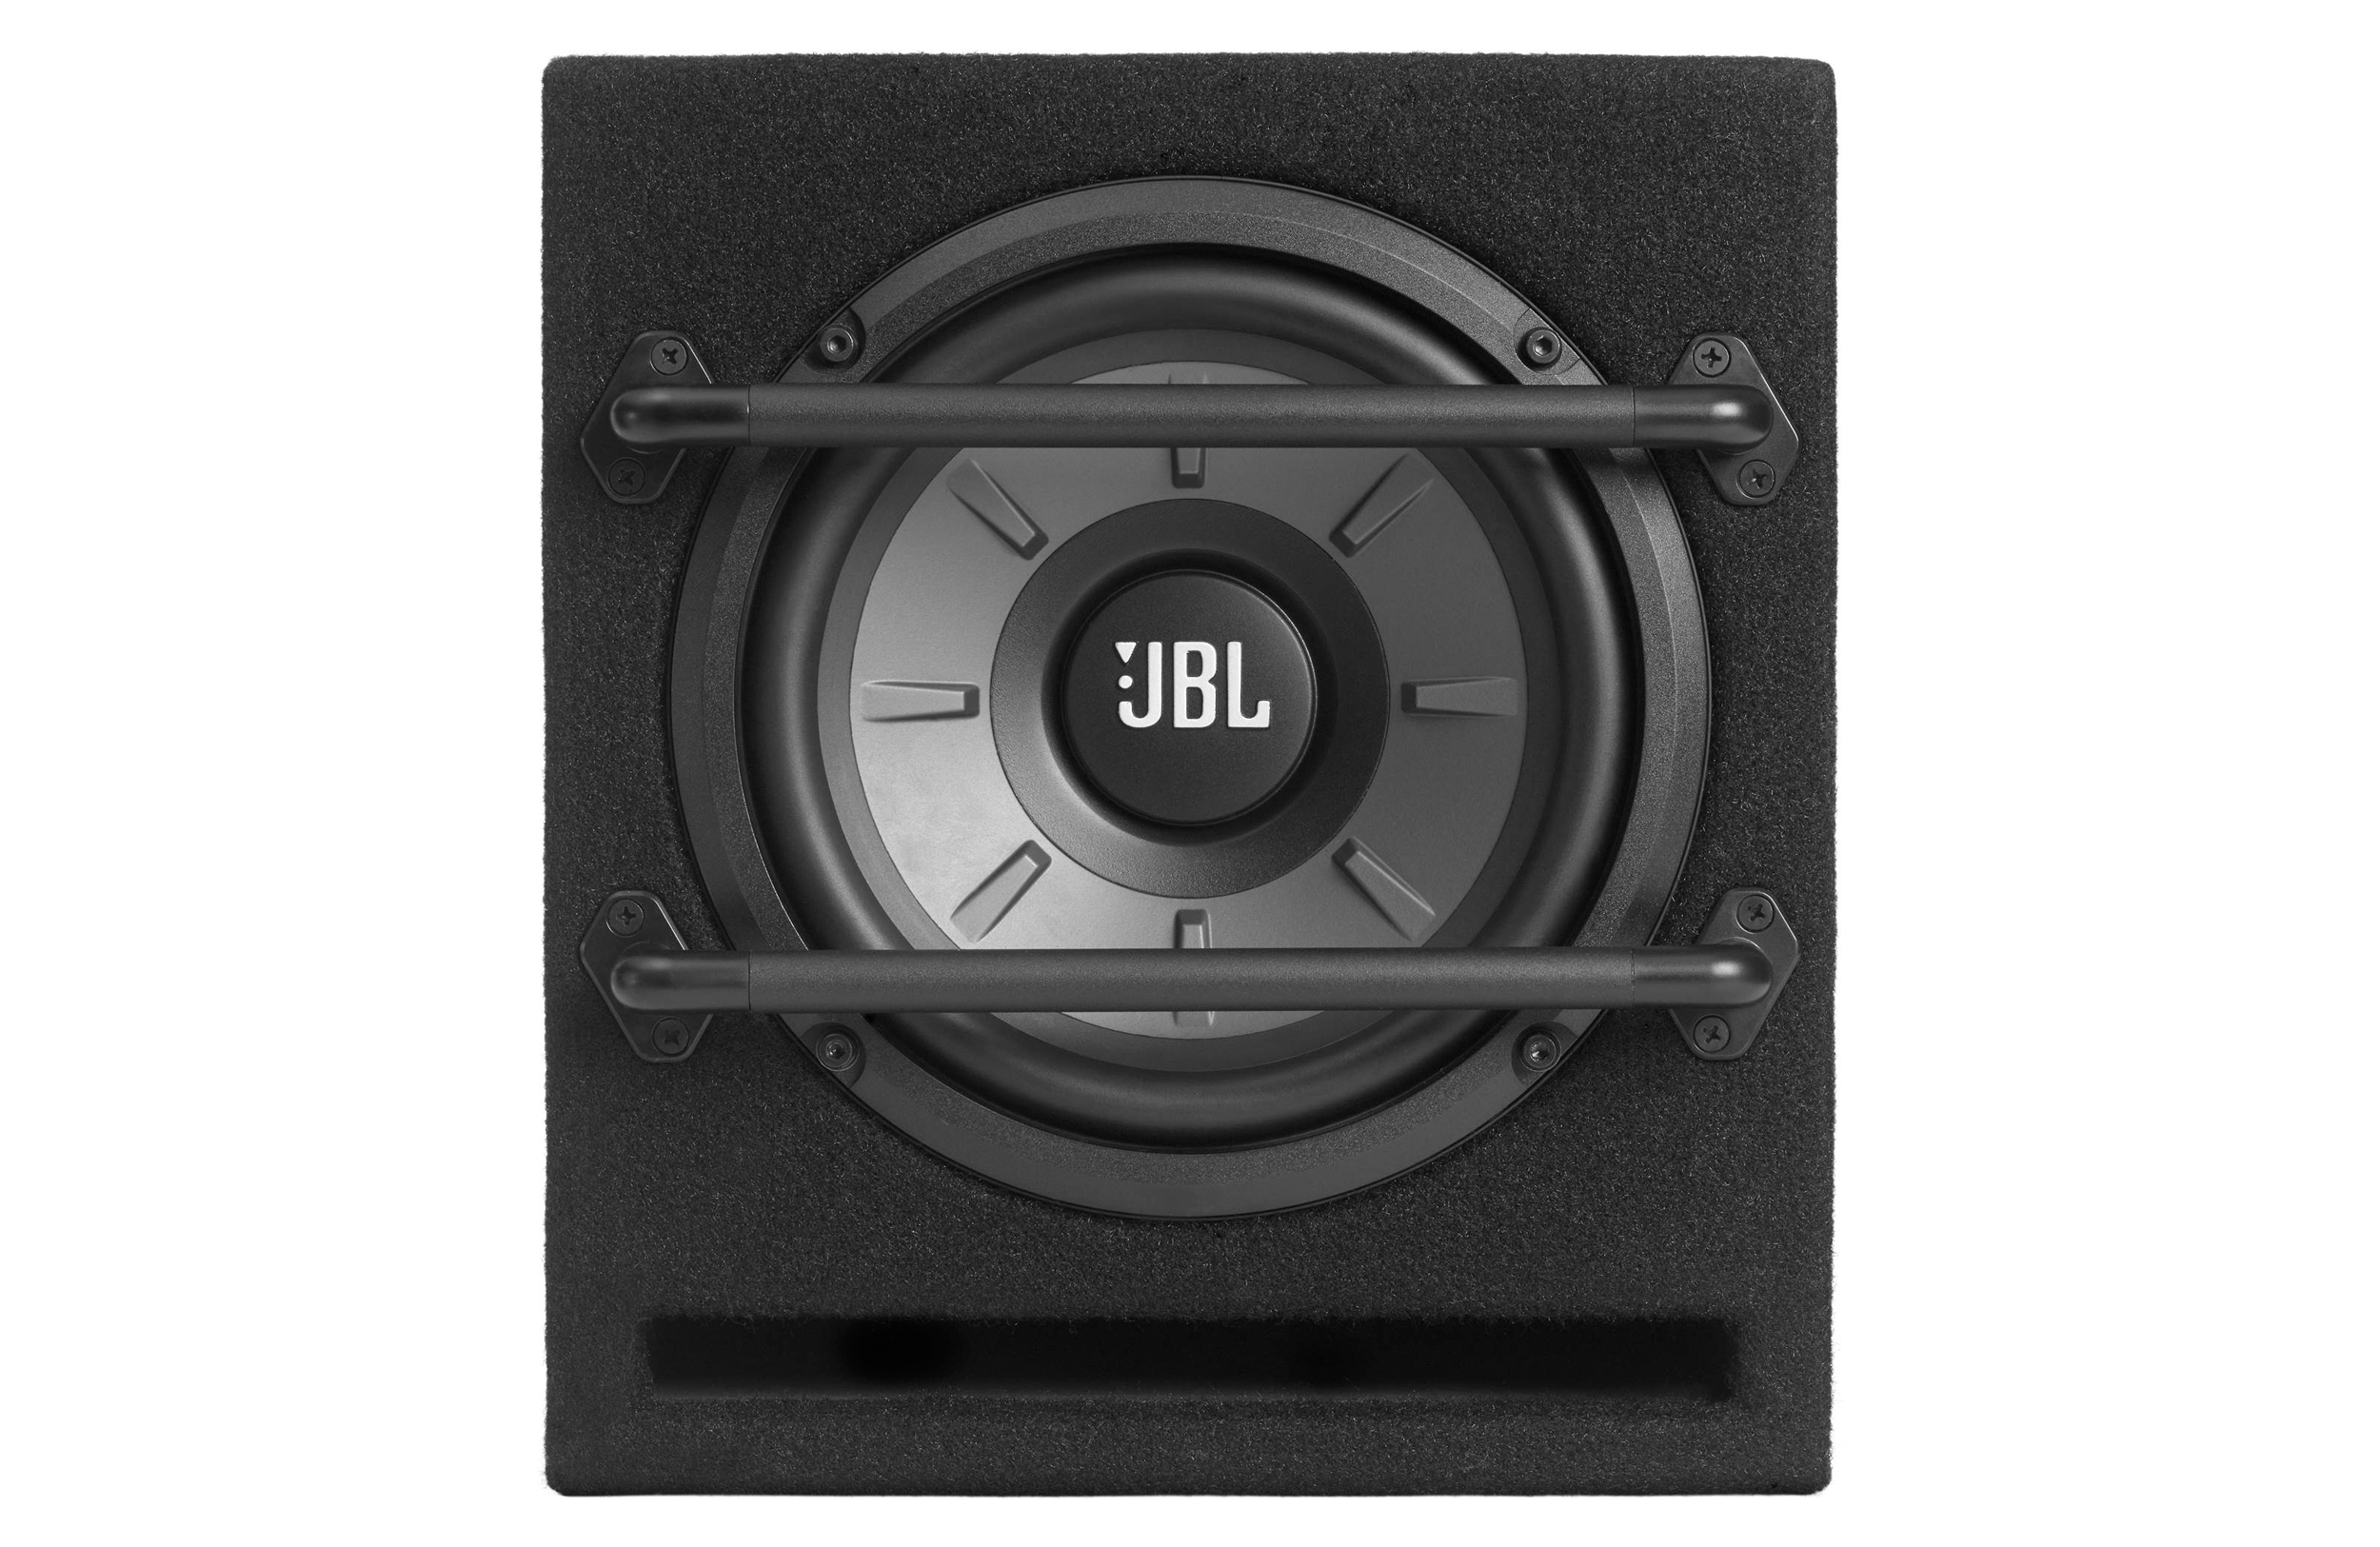 Built-In Class D 100 Watts RMS Amplifier